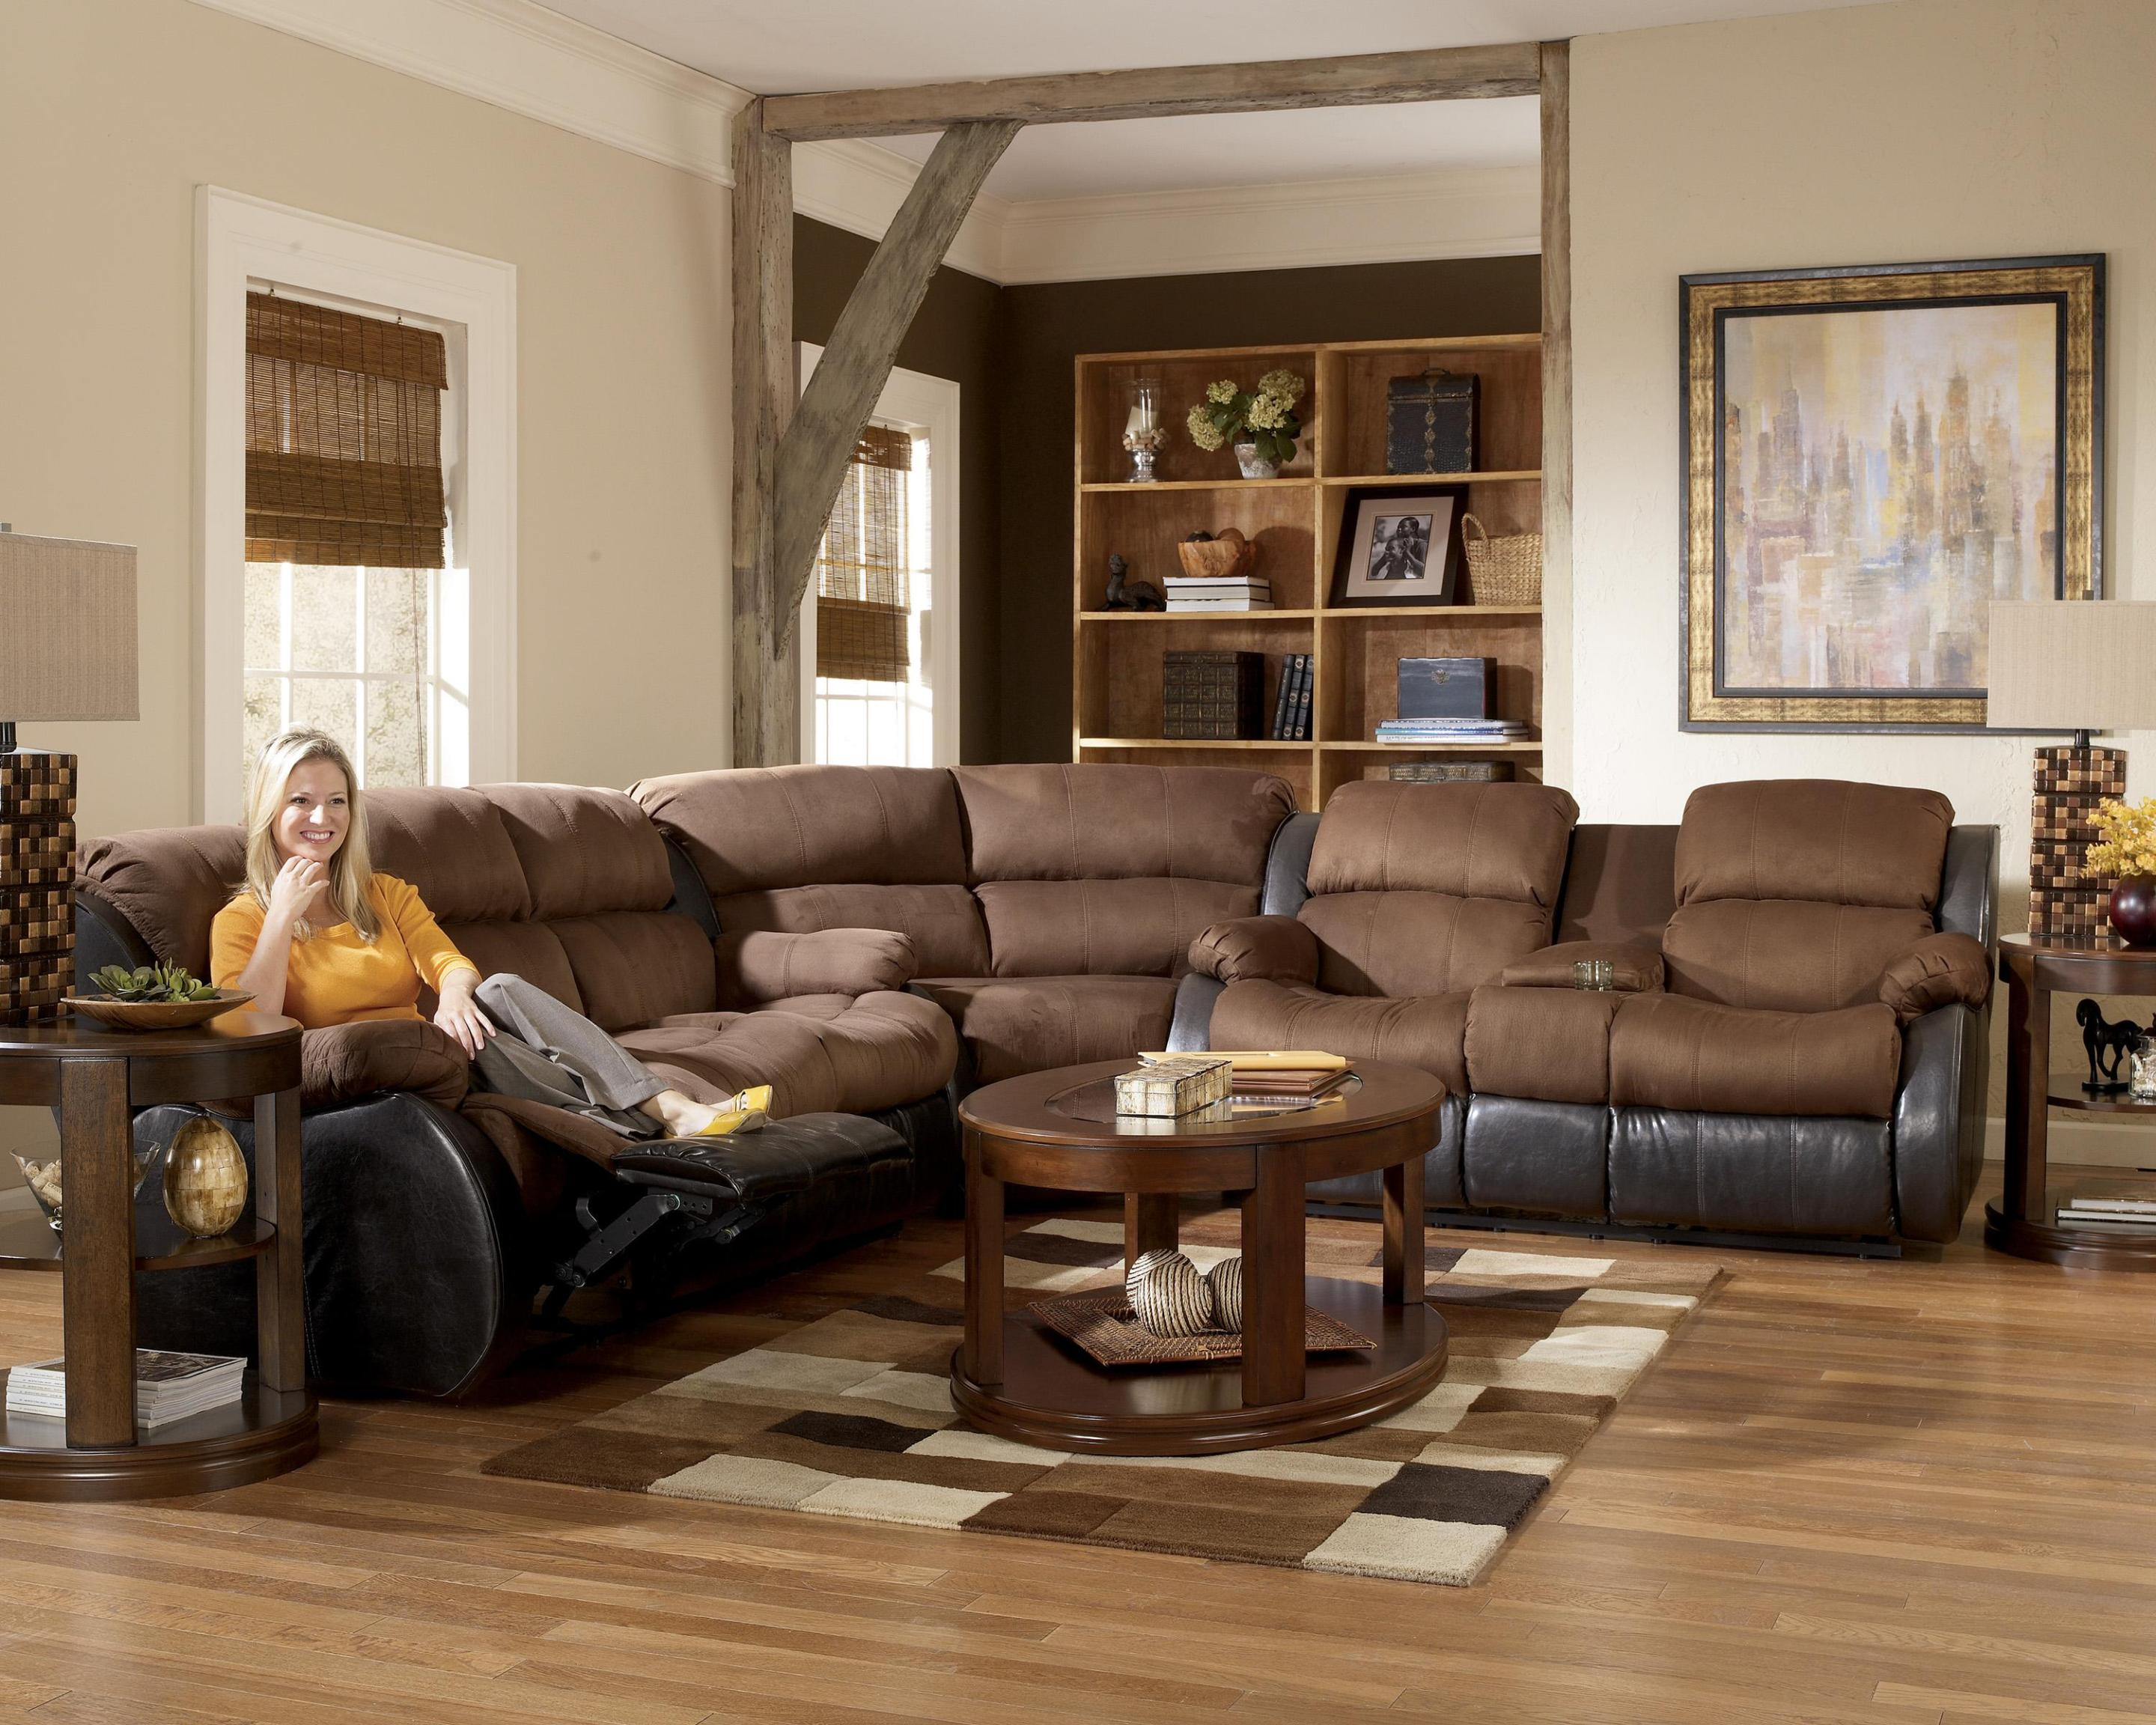 Image of: Brown Leather Sectional Sofas With Recliners